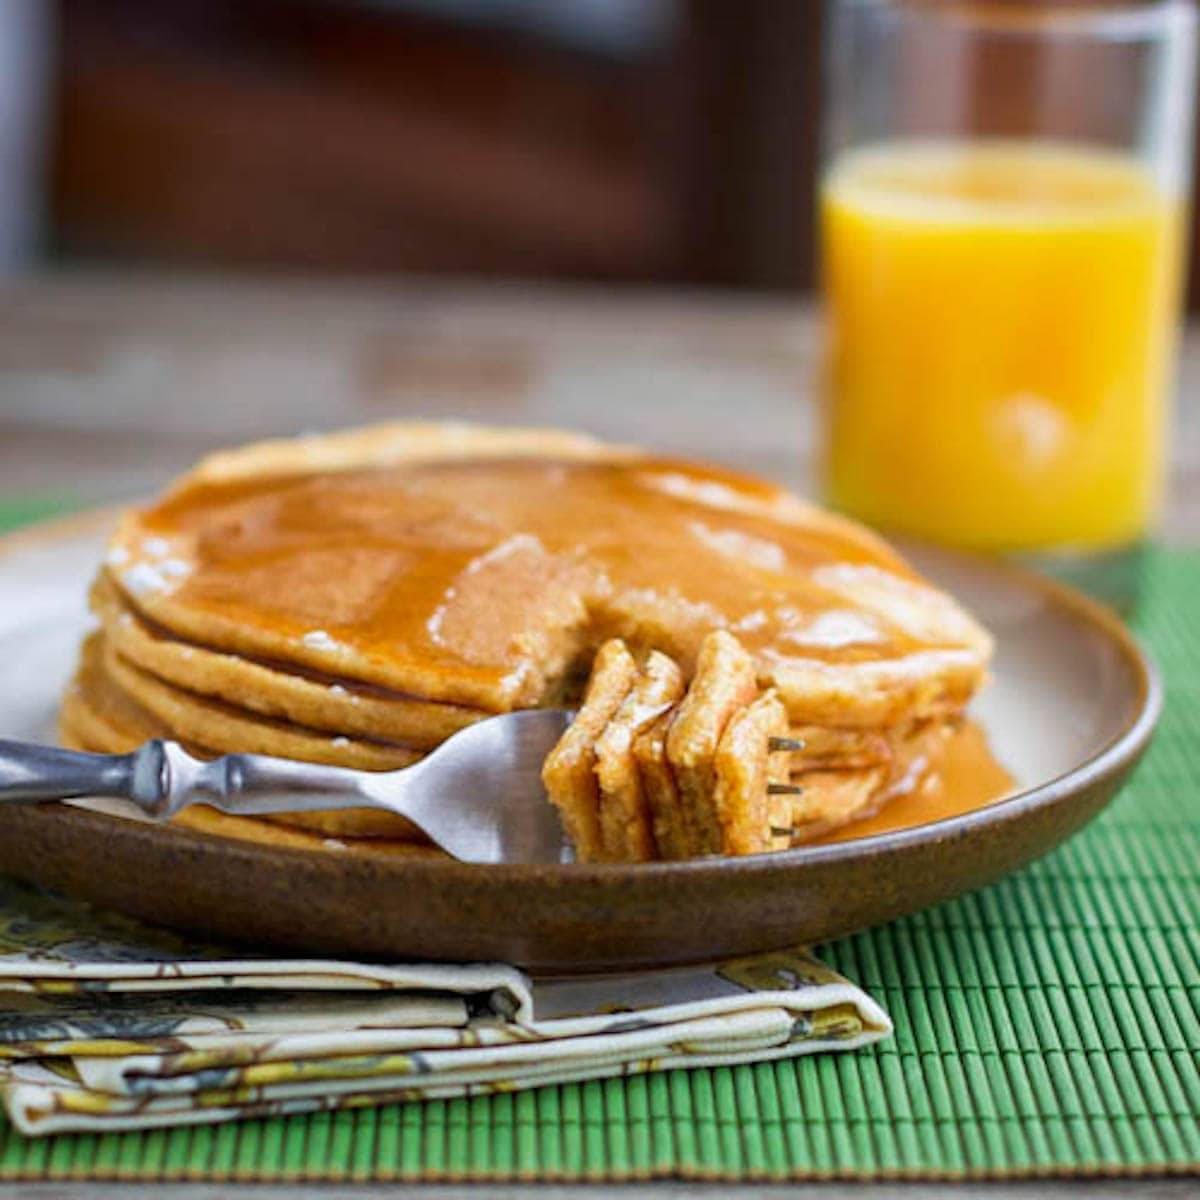 Stack of pancakes on a plate with a fork and a glass of orange juice.